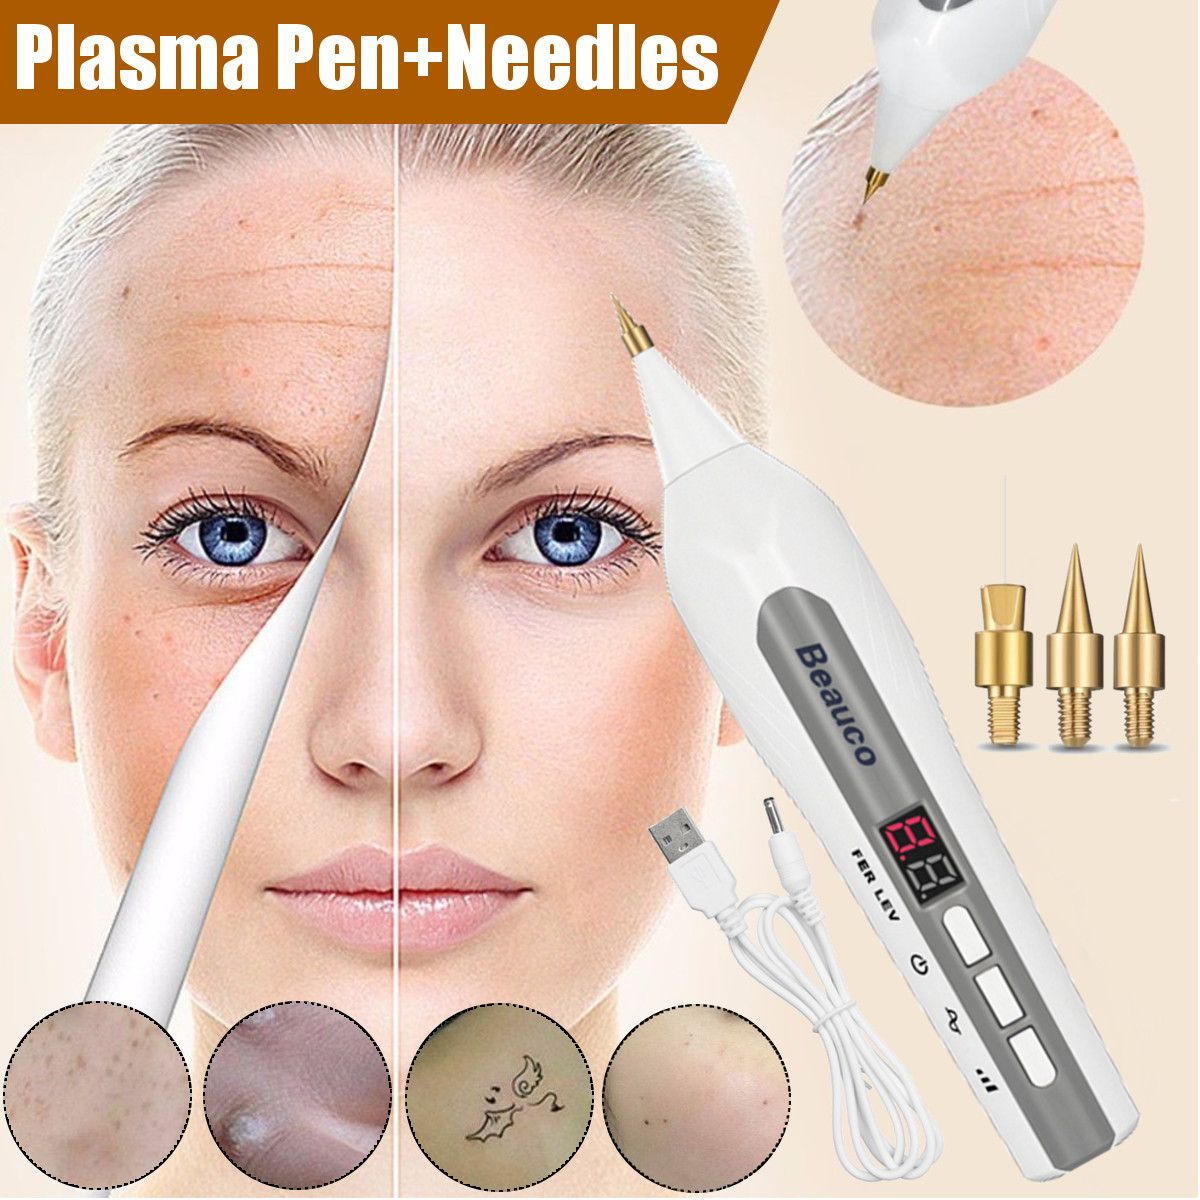 Fibroblast <font><b>Plasma</b></font> <font><b>Pen</b></font> for Face <font><b>Eyelid</b></font> <font><b>Lift</b></font> Wrinkle <font><b>Removal</b></font> Spot <font><b>Removal</b></font> Plasmapen Skin <font><b>Lift</b></font> Usb 4 Files Adjustable 2019 Newest image